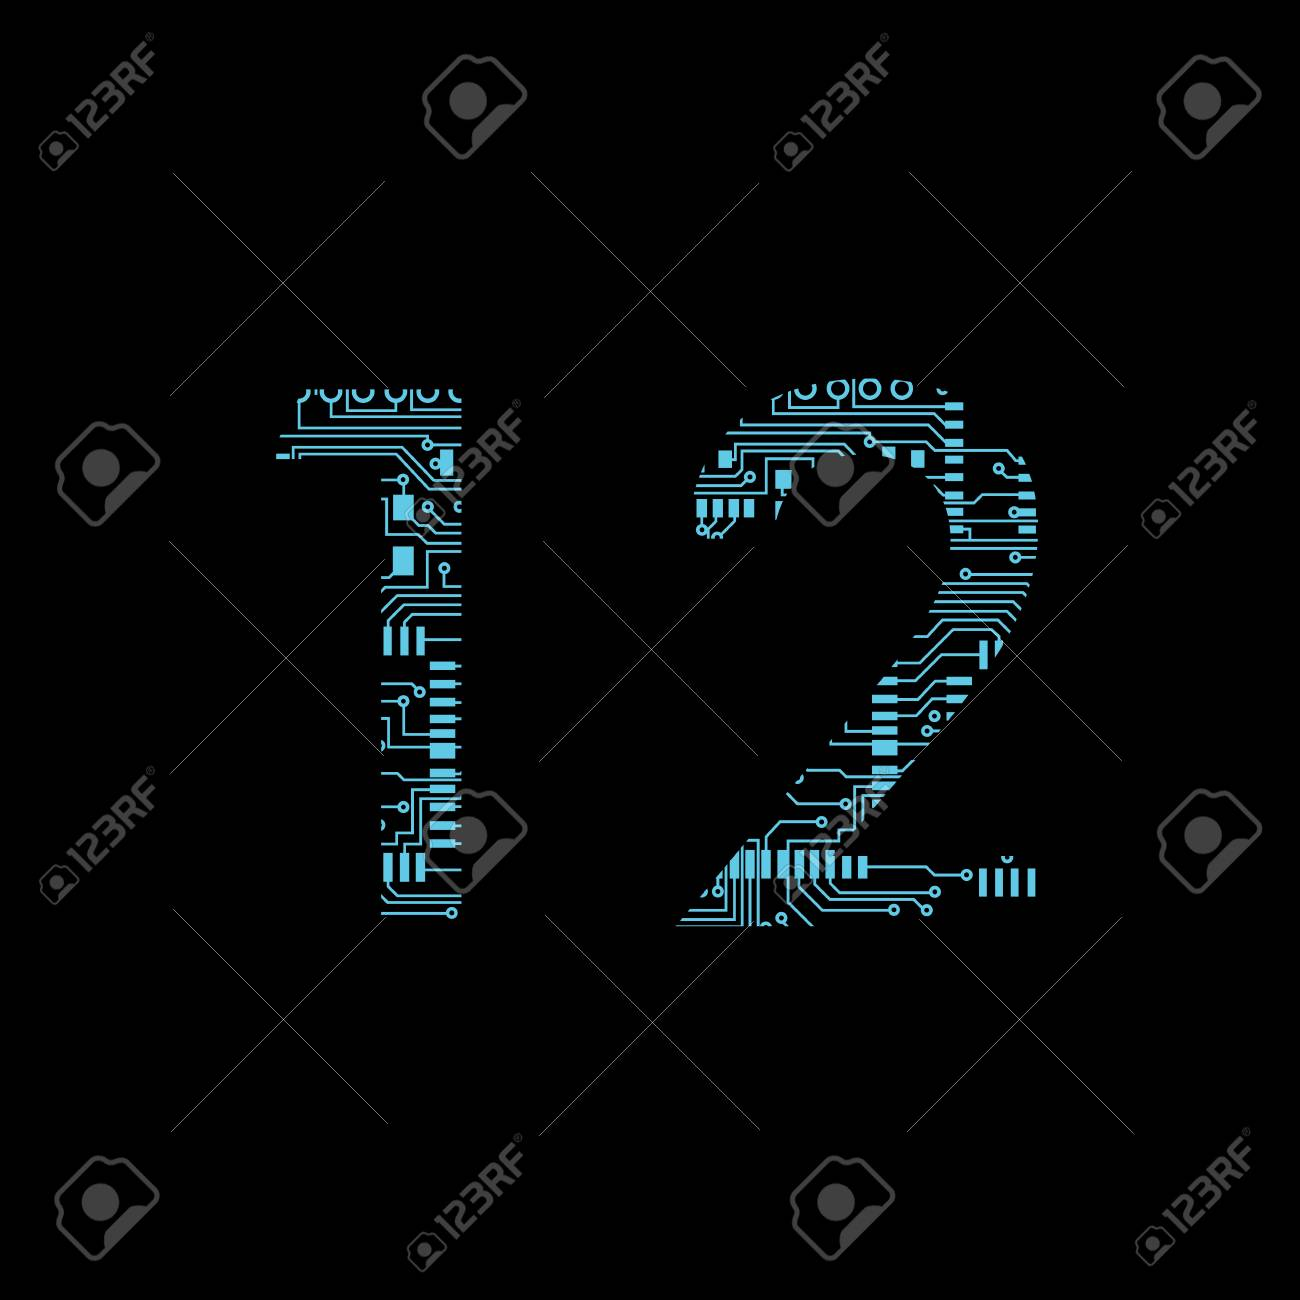 Circuit Board Digit 1 2 Vector Illustration Royalty Free Cliparts Stock Image 106249229